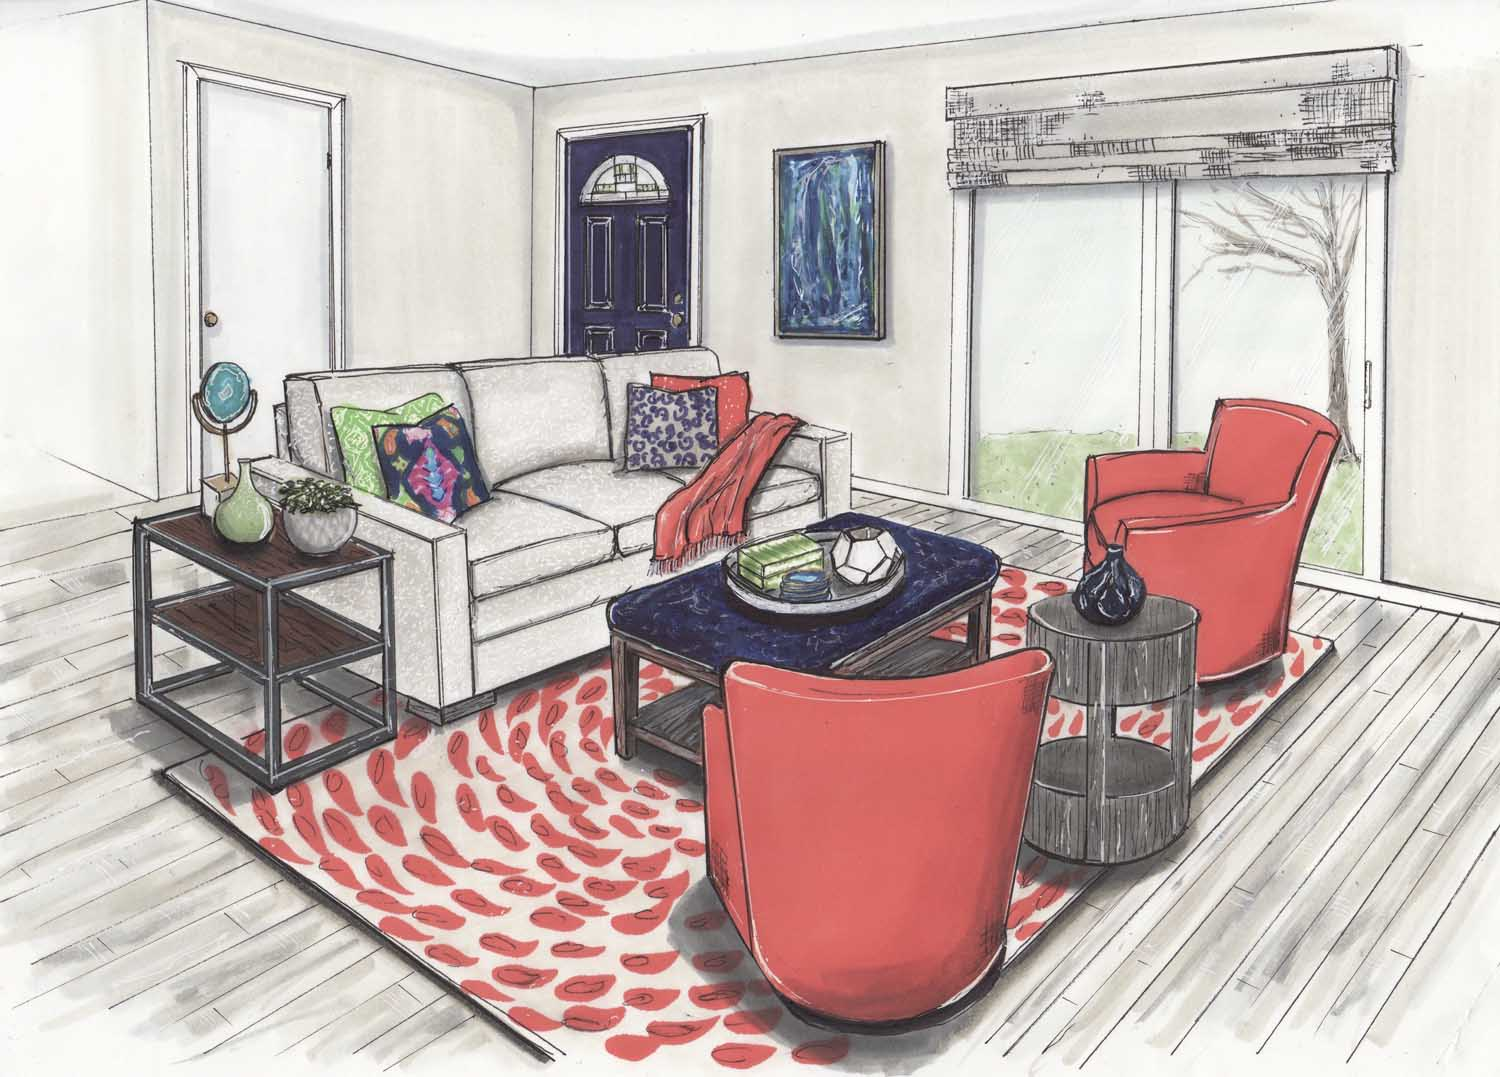 Columbia Maryland Colorful Living Room Update Design Details Rendering - Designer Bestie April Force Pardoe Interiors.jpg